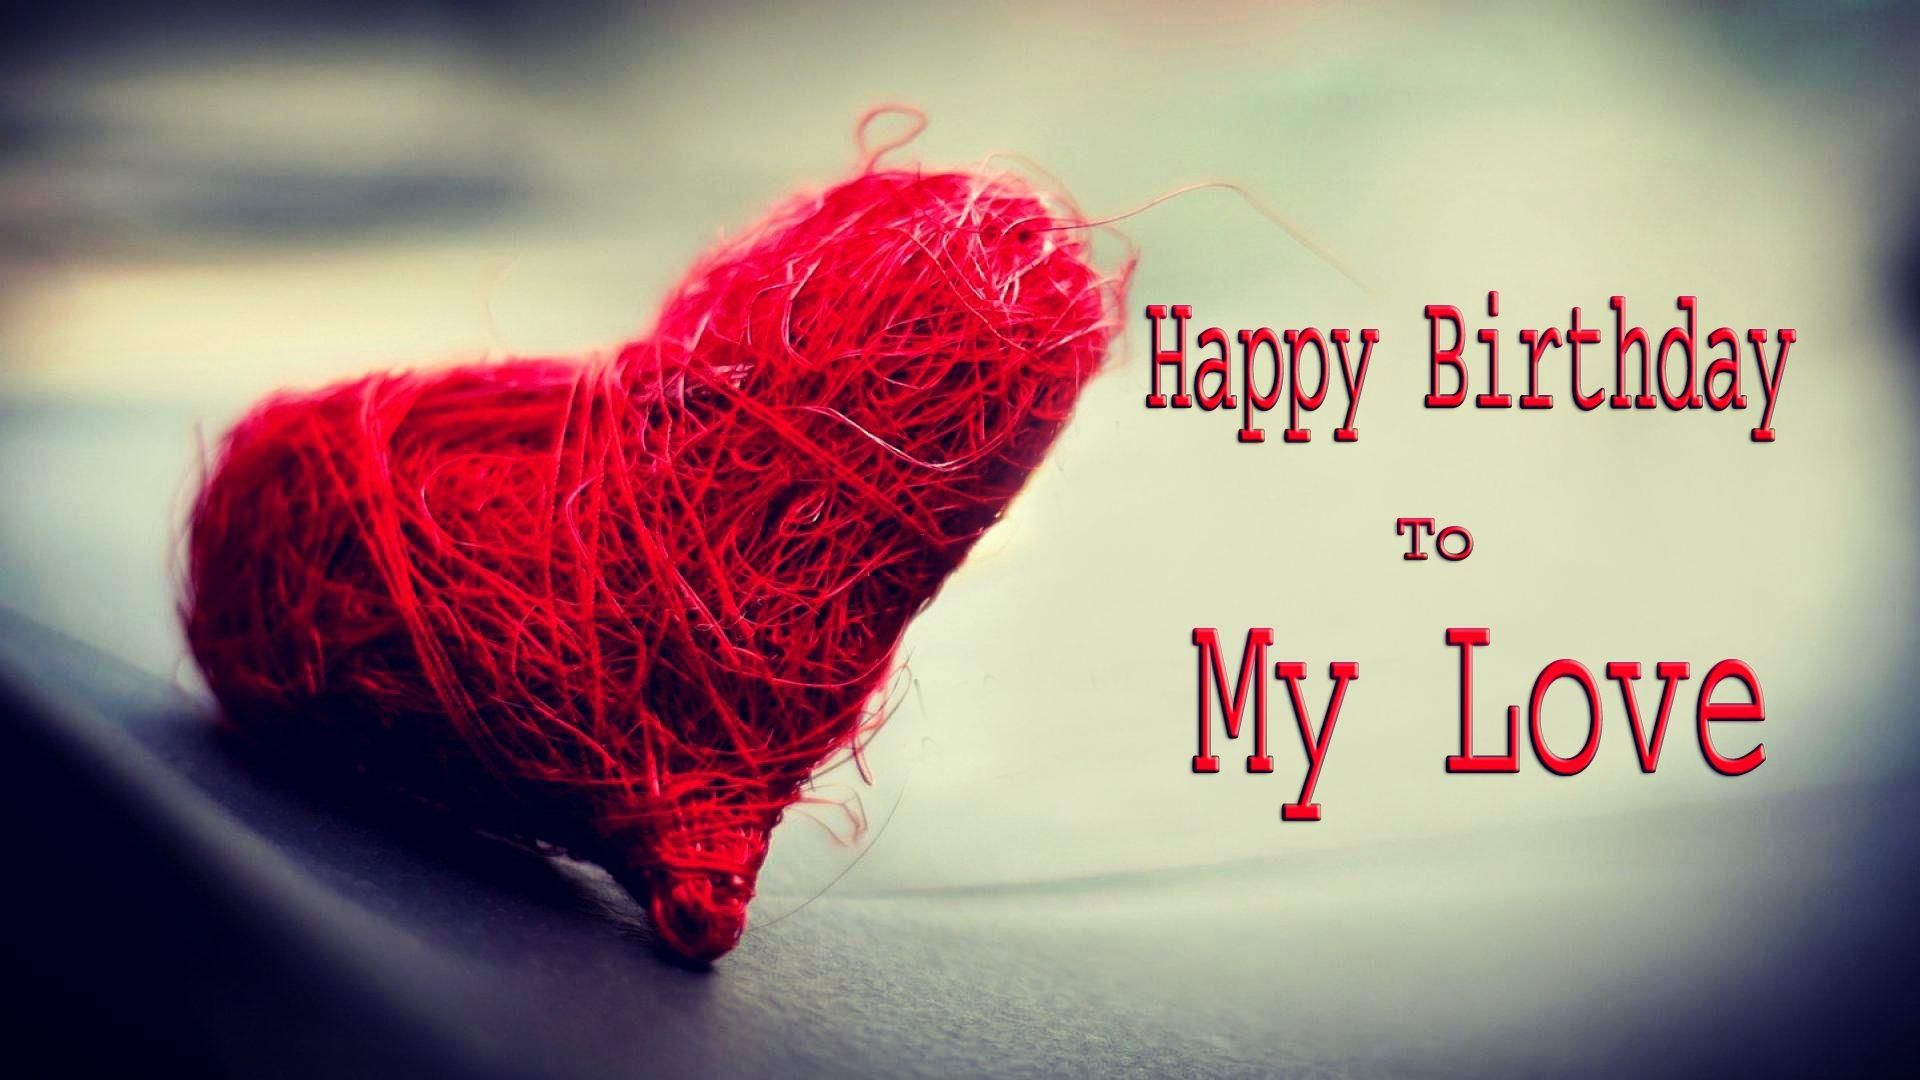 Birthday Photos Images Pictures Wallpapers For Love With